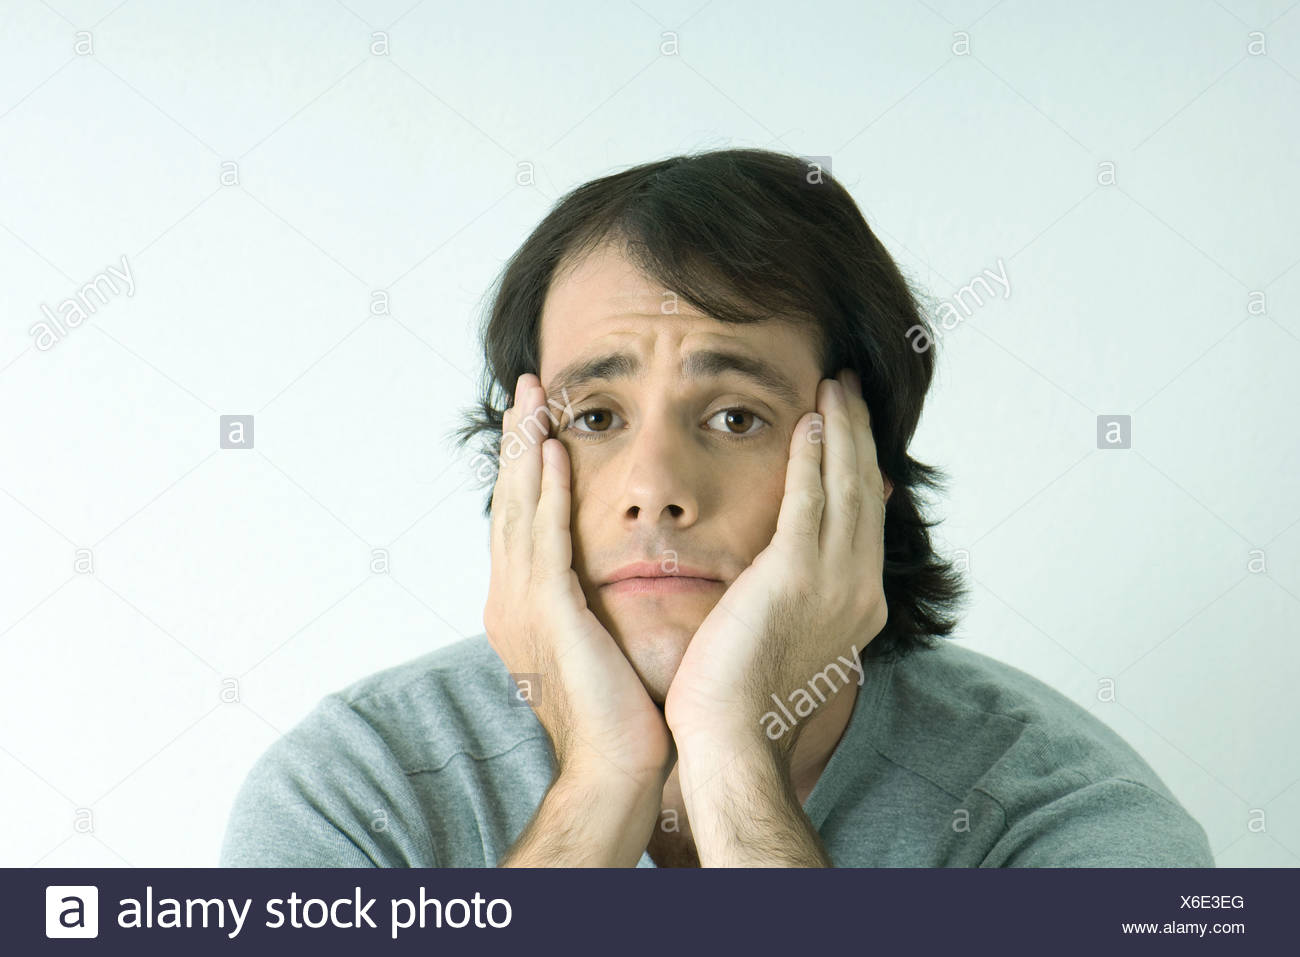 Man holding head in hands, portrait - Stock Image